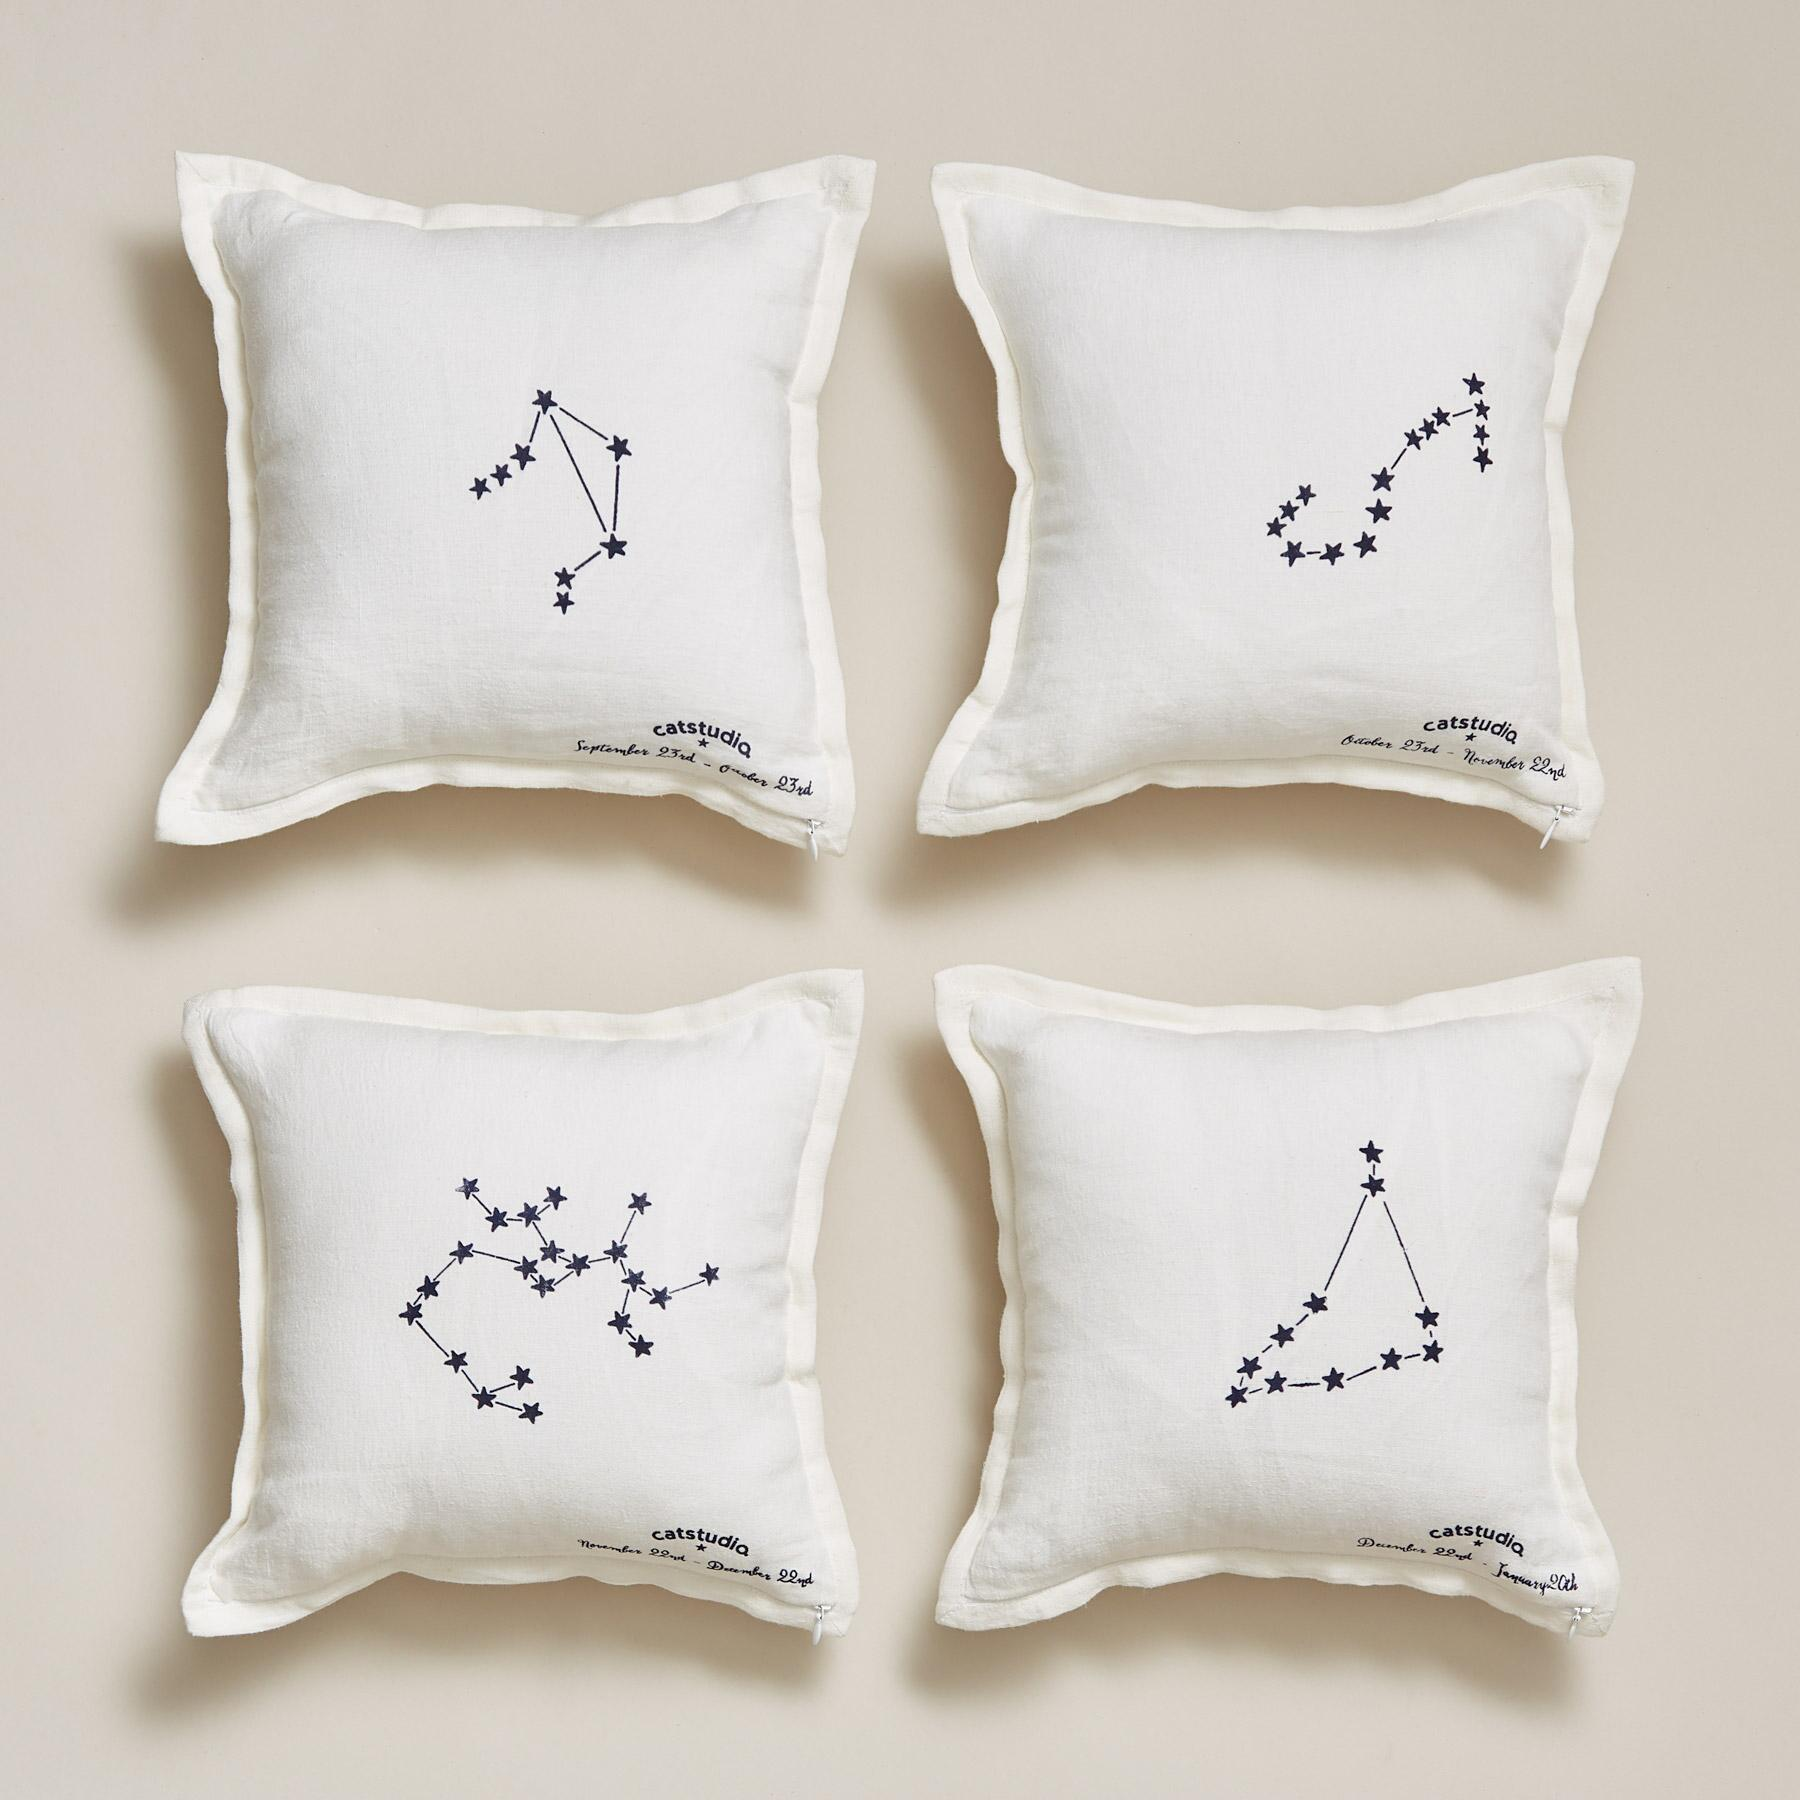 STARS ALIGN PILLOWS: View 6